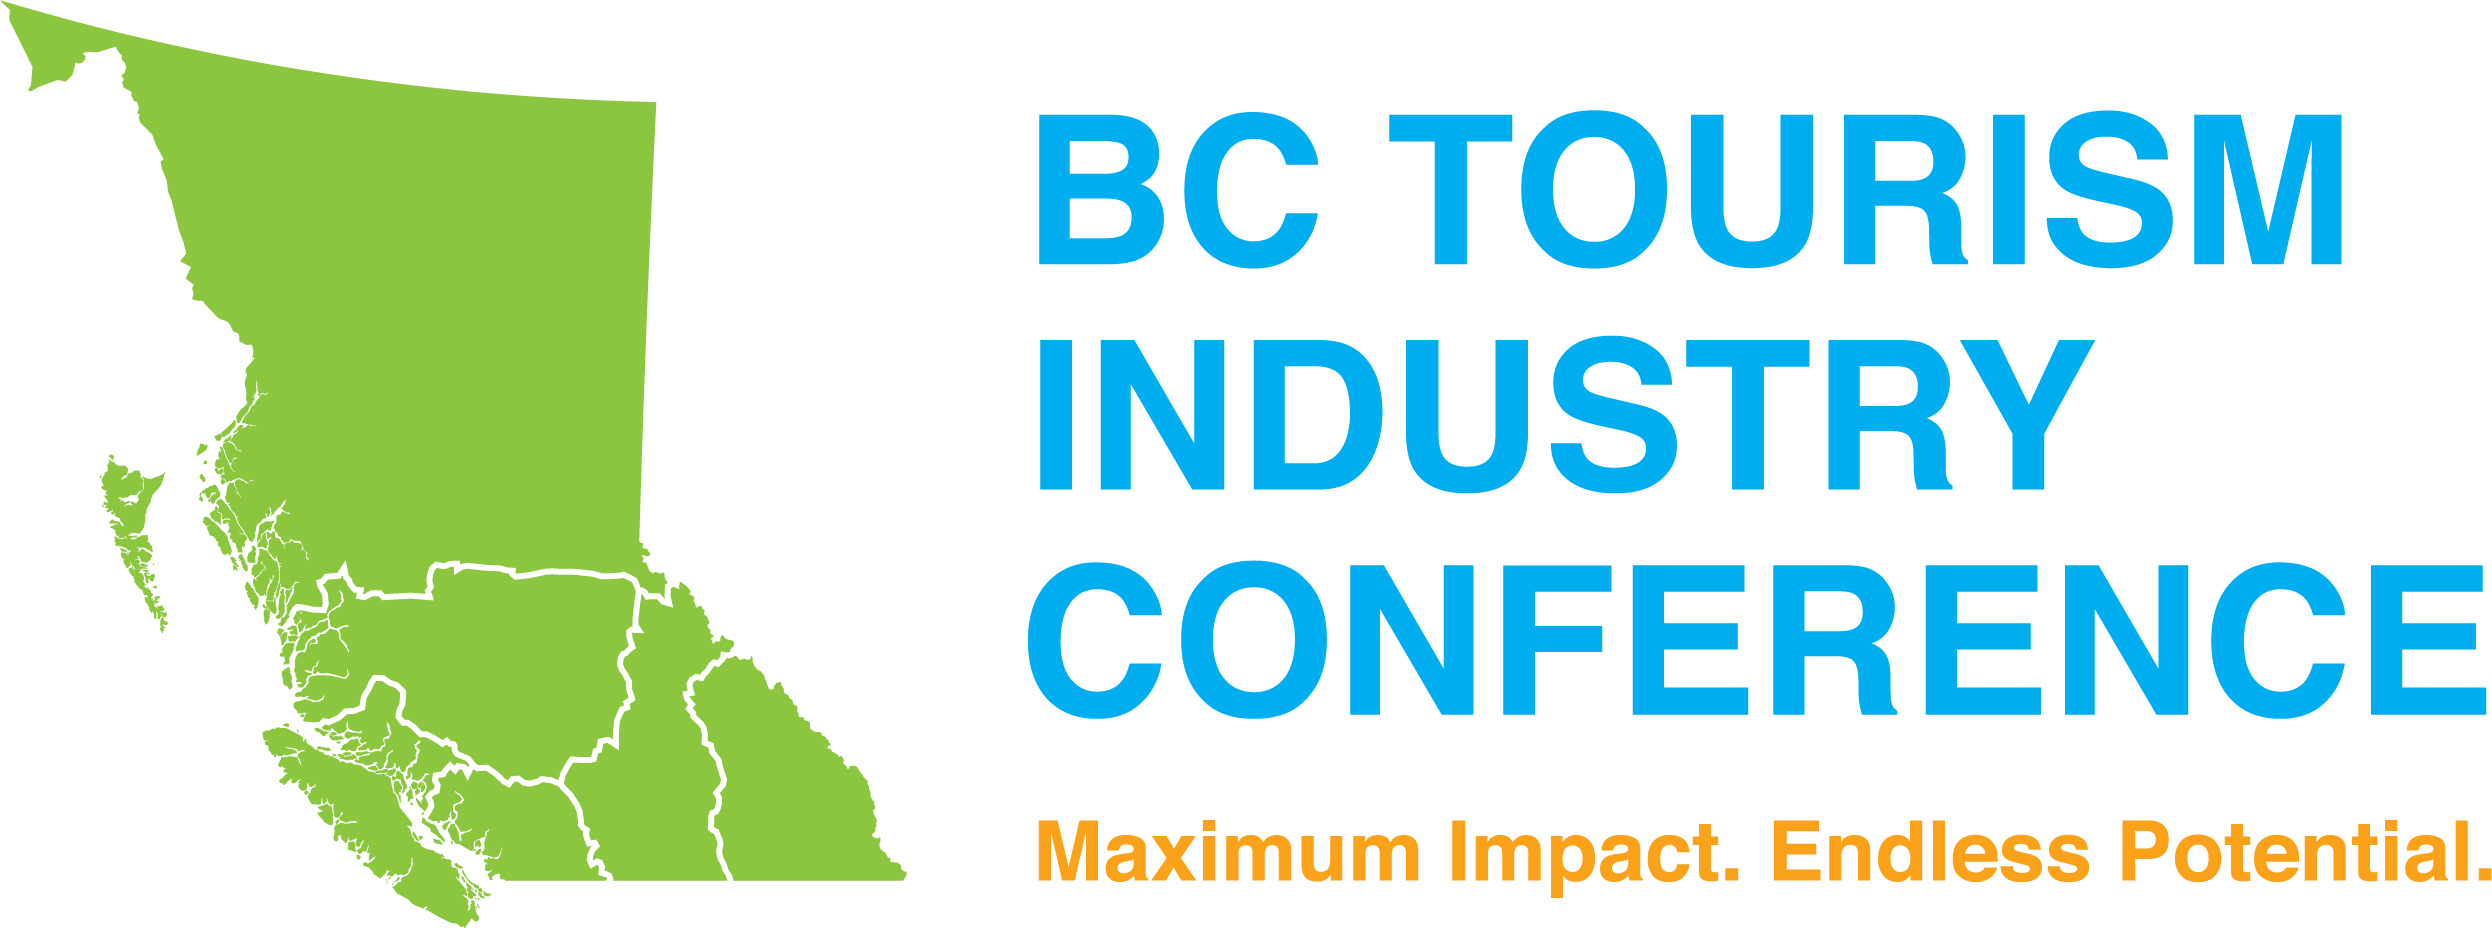 BC Tourism Industry Conference - 2019 (Vancouver) - Tourism Industry